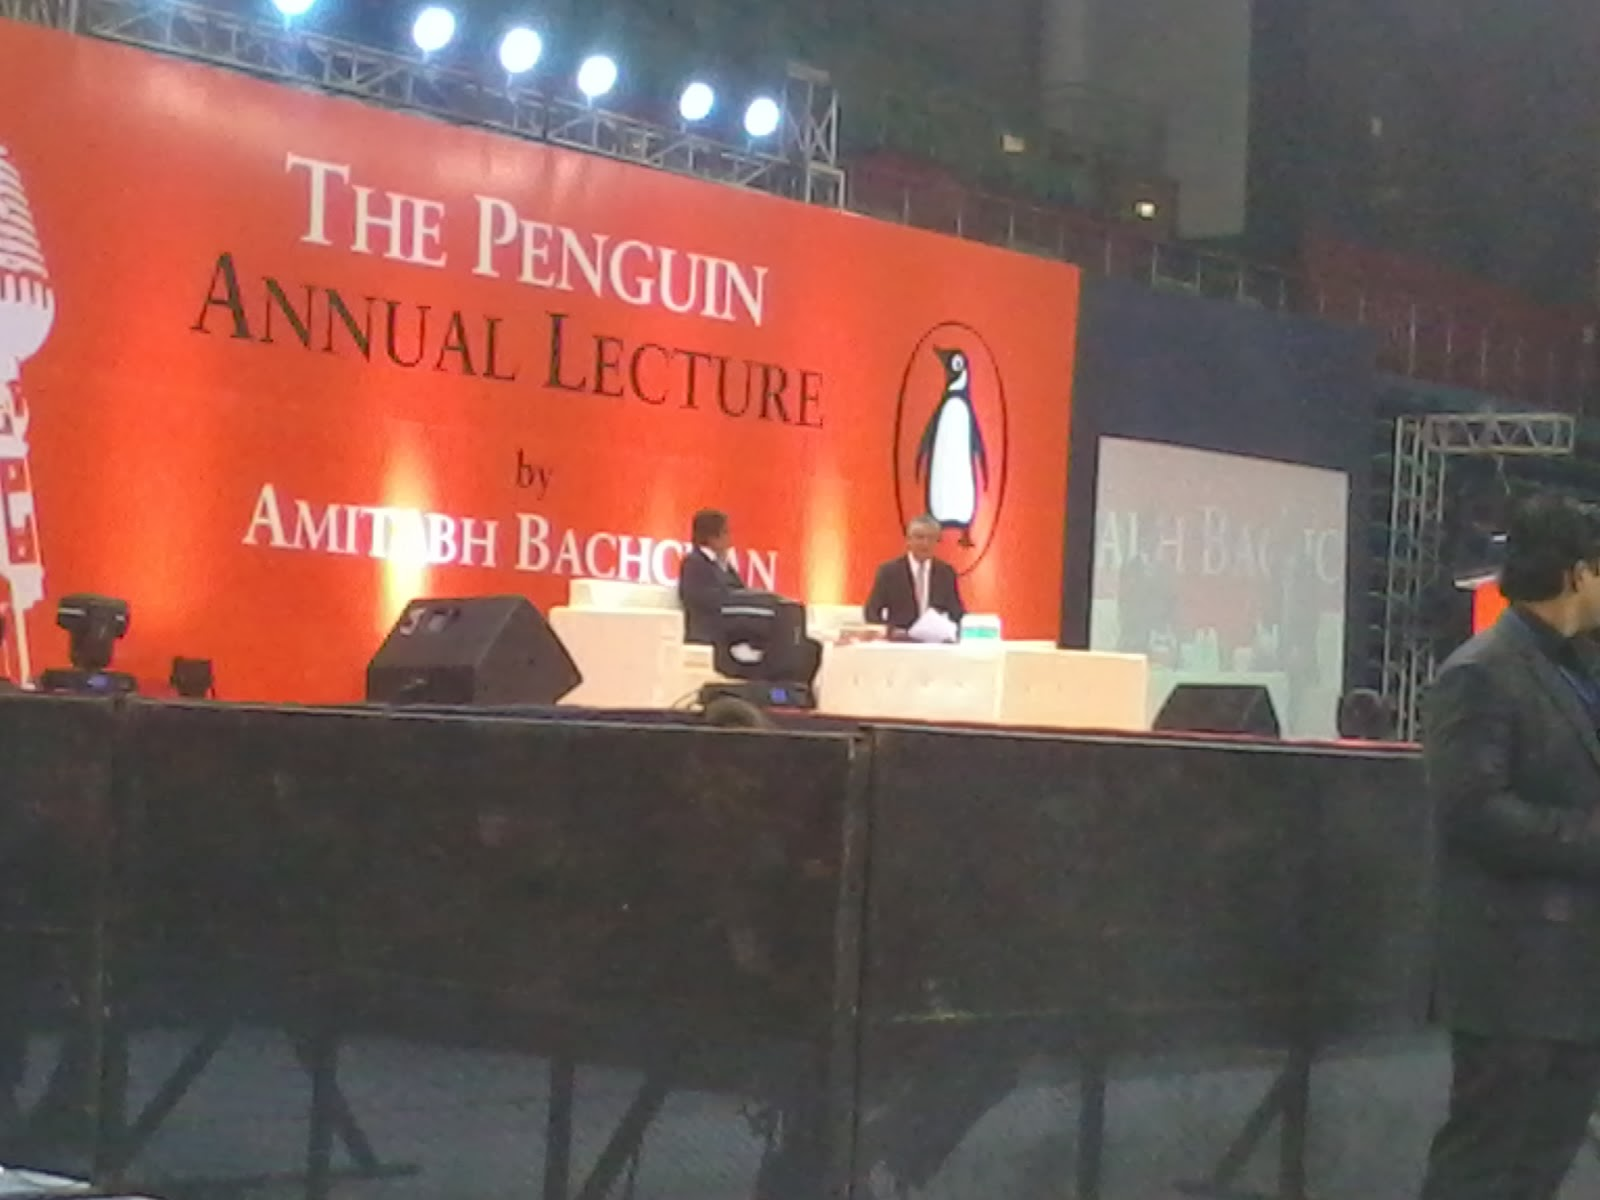 Penguin Annual Lecture